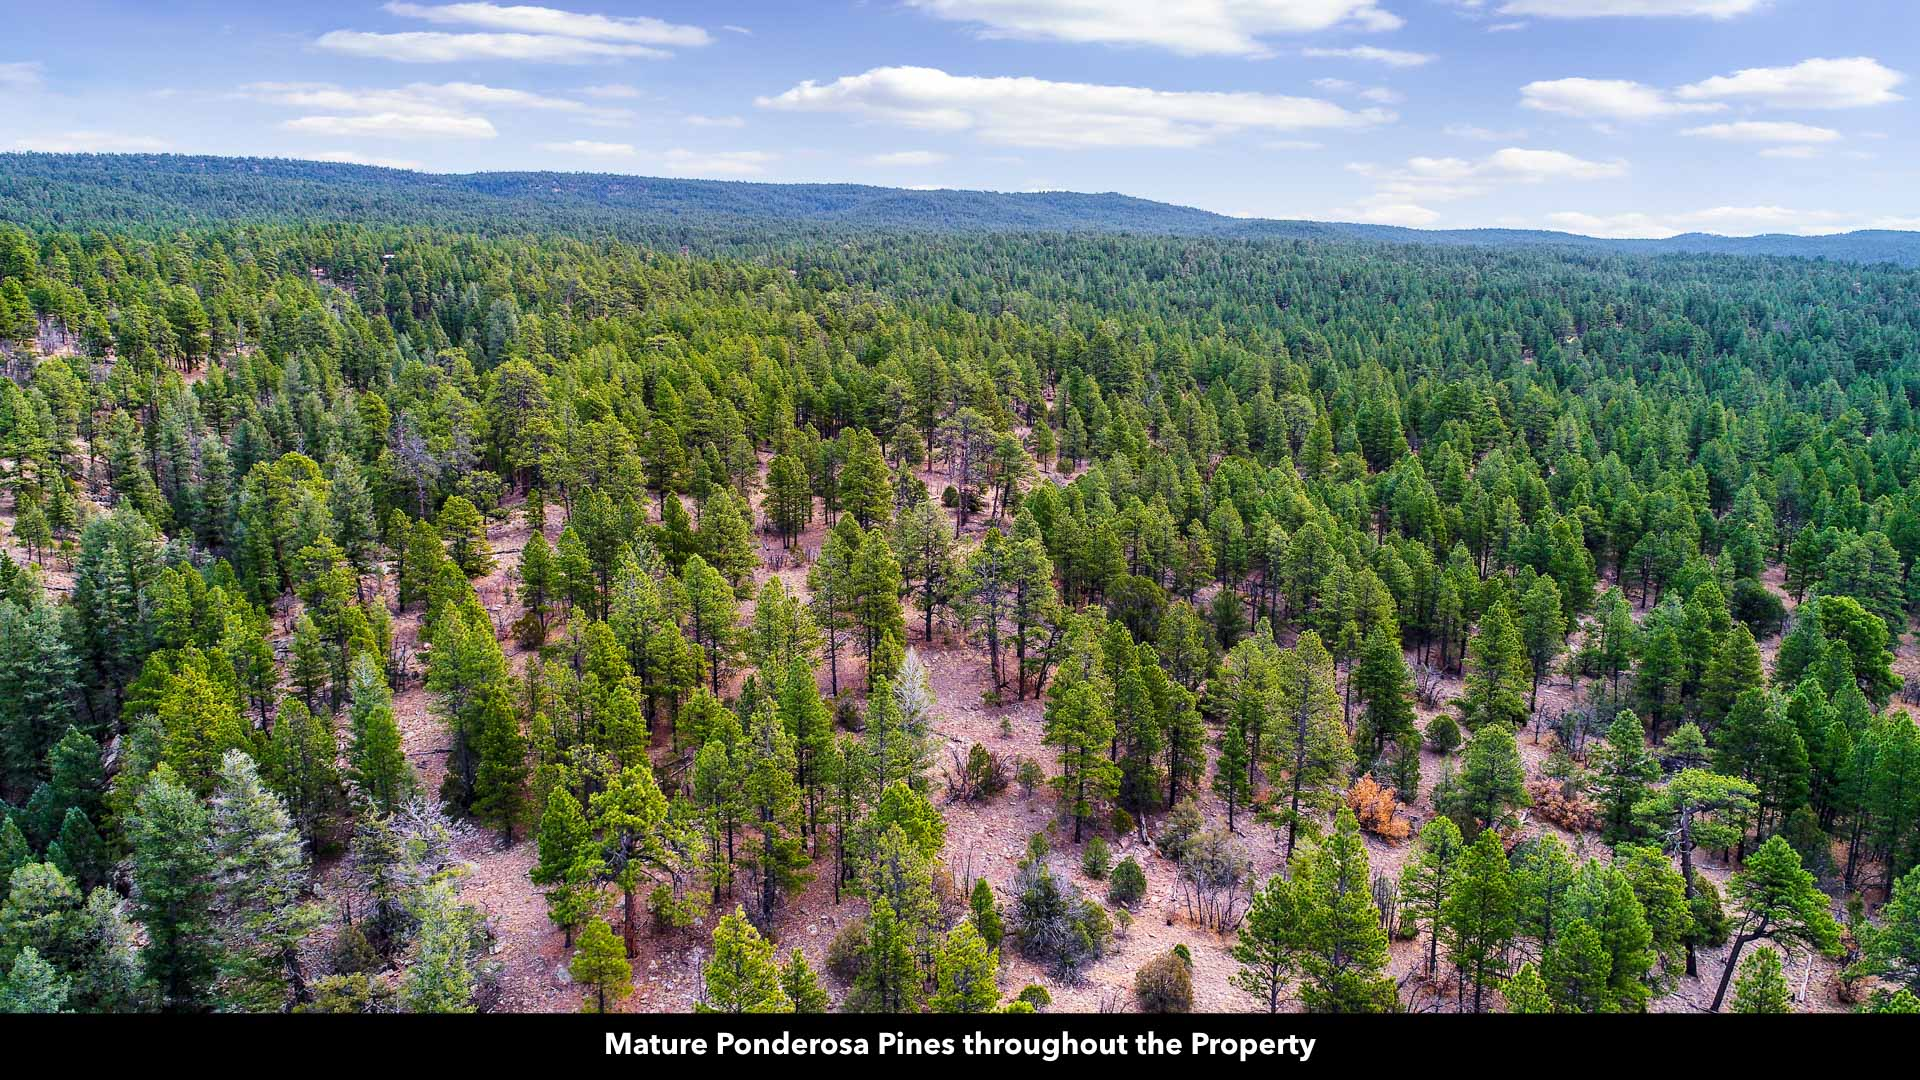 20 Wooded Mountain Acres of Land for Sale in New Mexico by